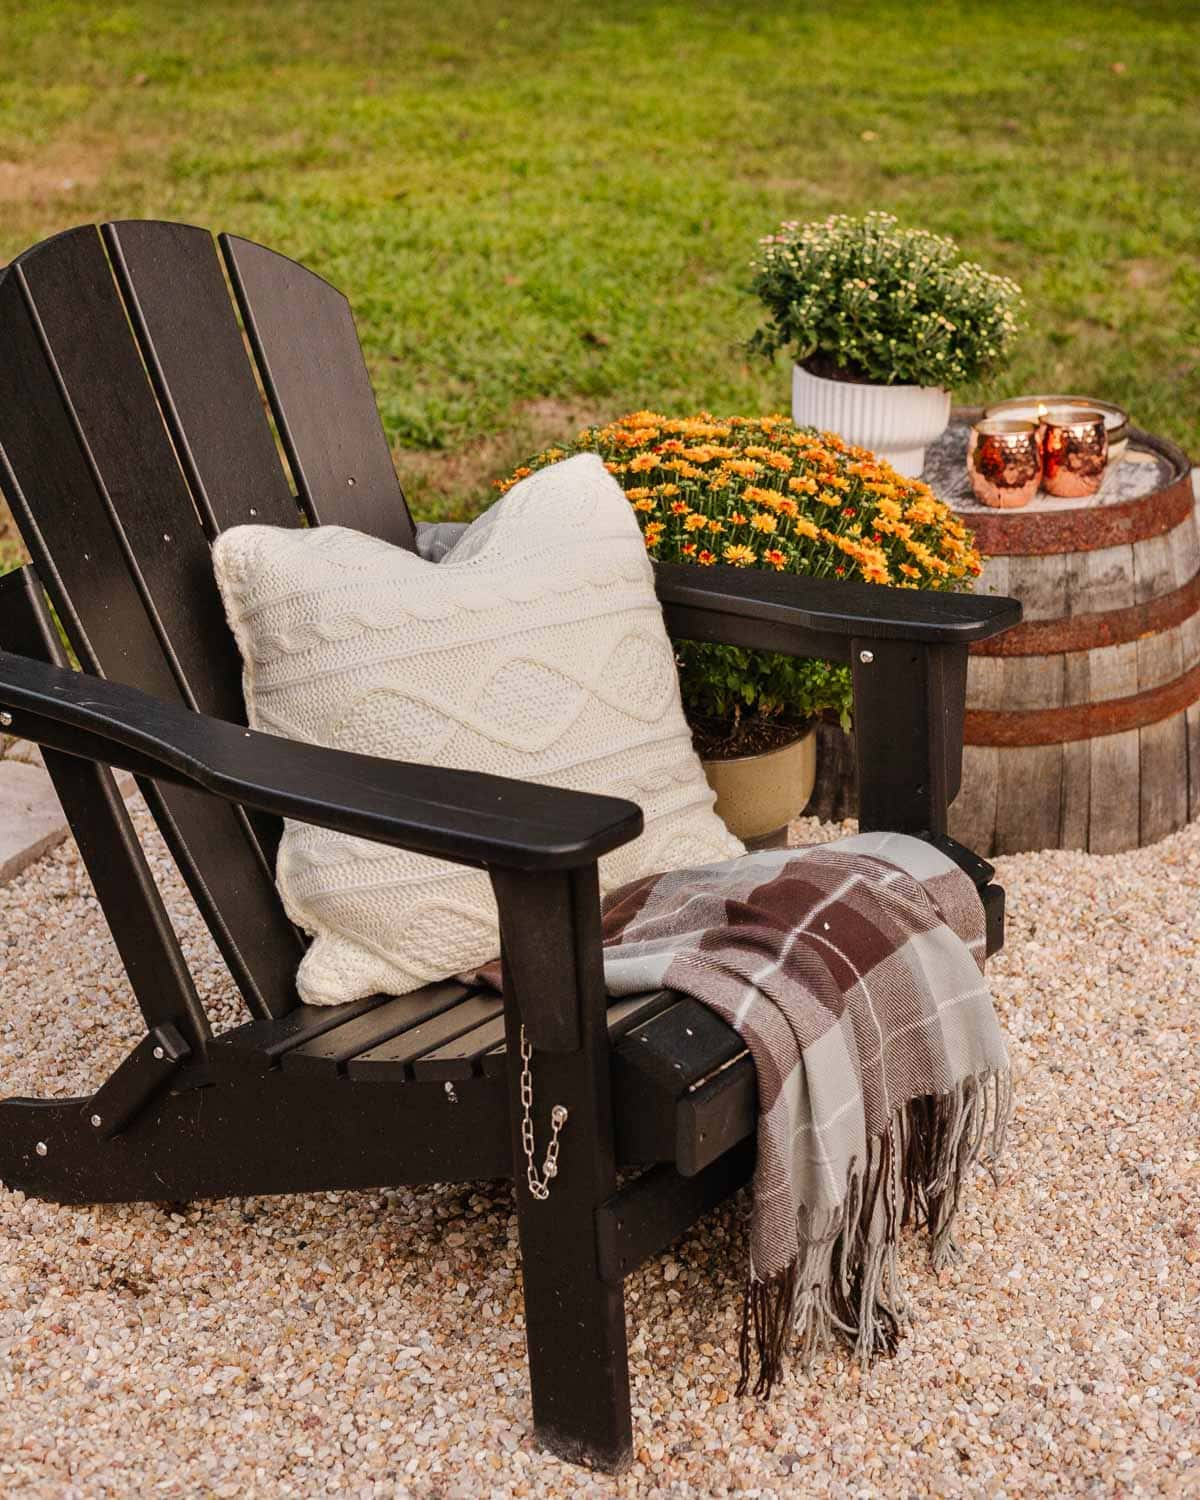 outdoor fall decor - cable knit pillows with plaid blankets